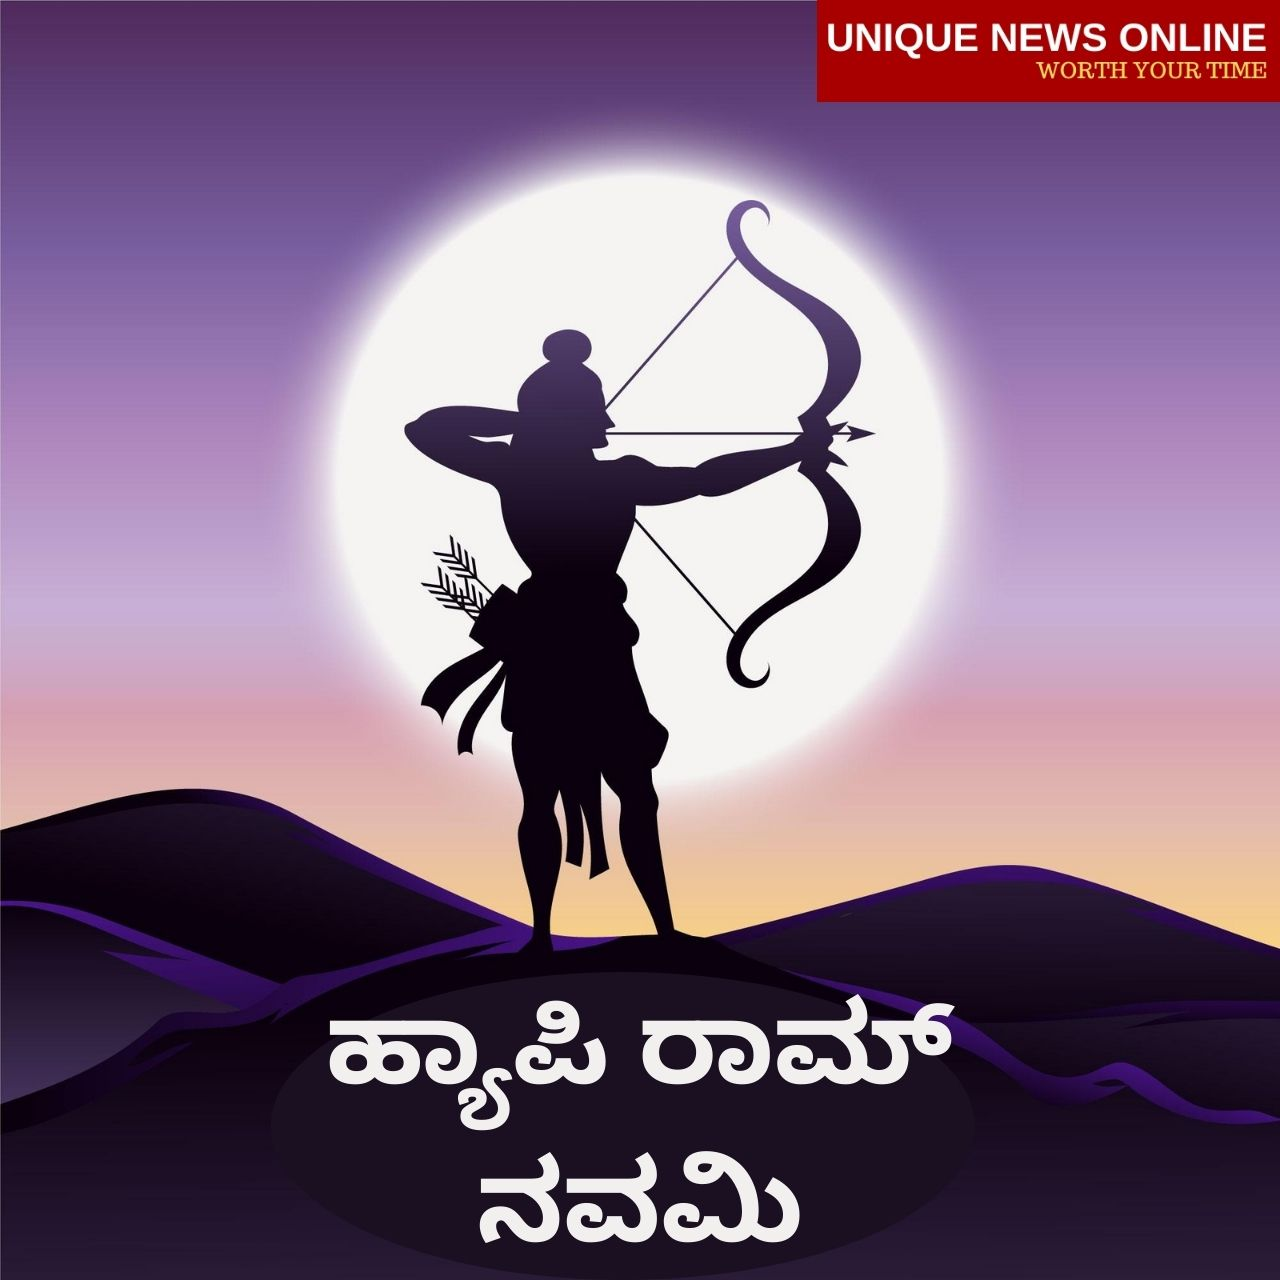 Happy Ram Navami 2021 Wishes in Kannada, Quotes, Images, Messages, and Greetings to Share